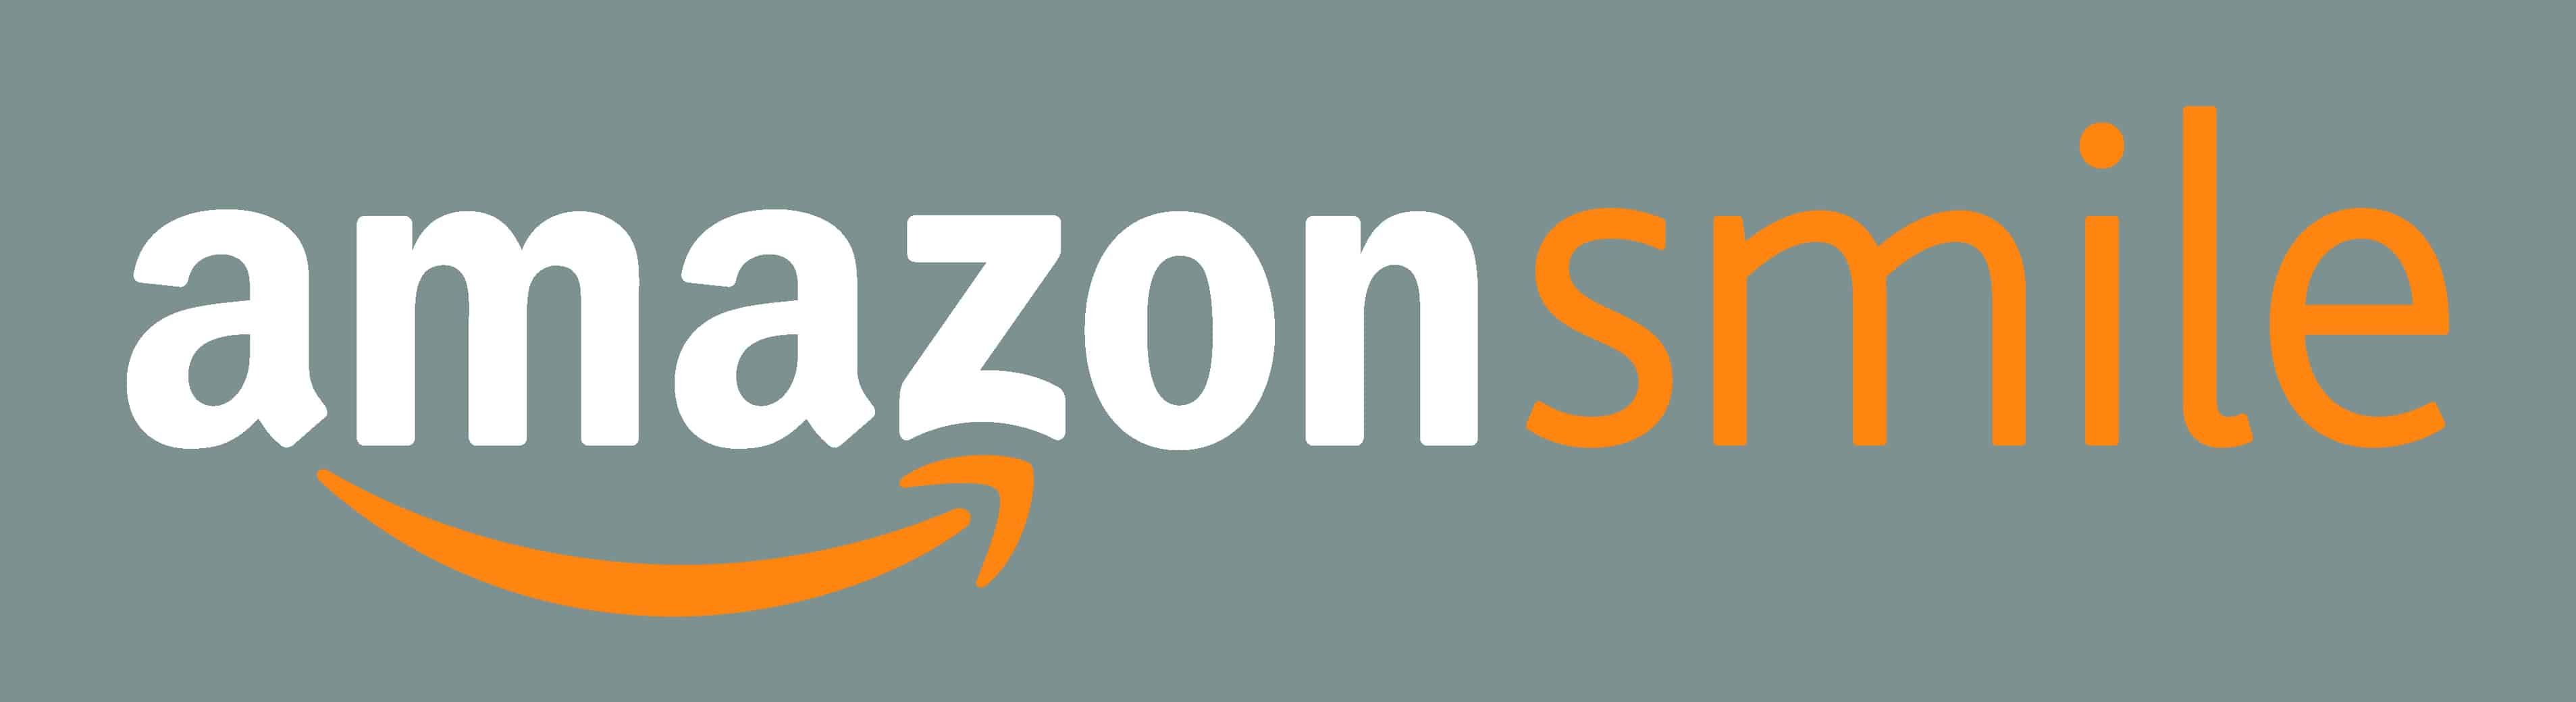 Link to Amazon Smile website